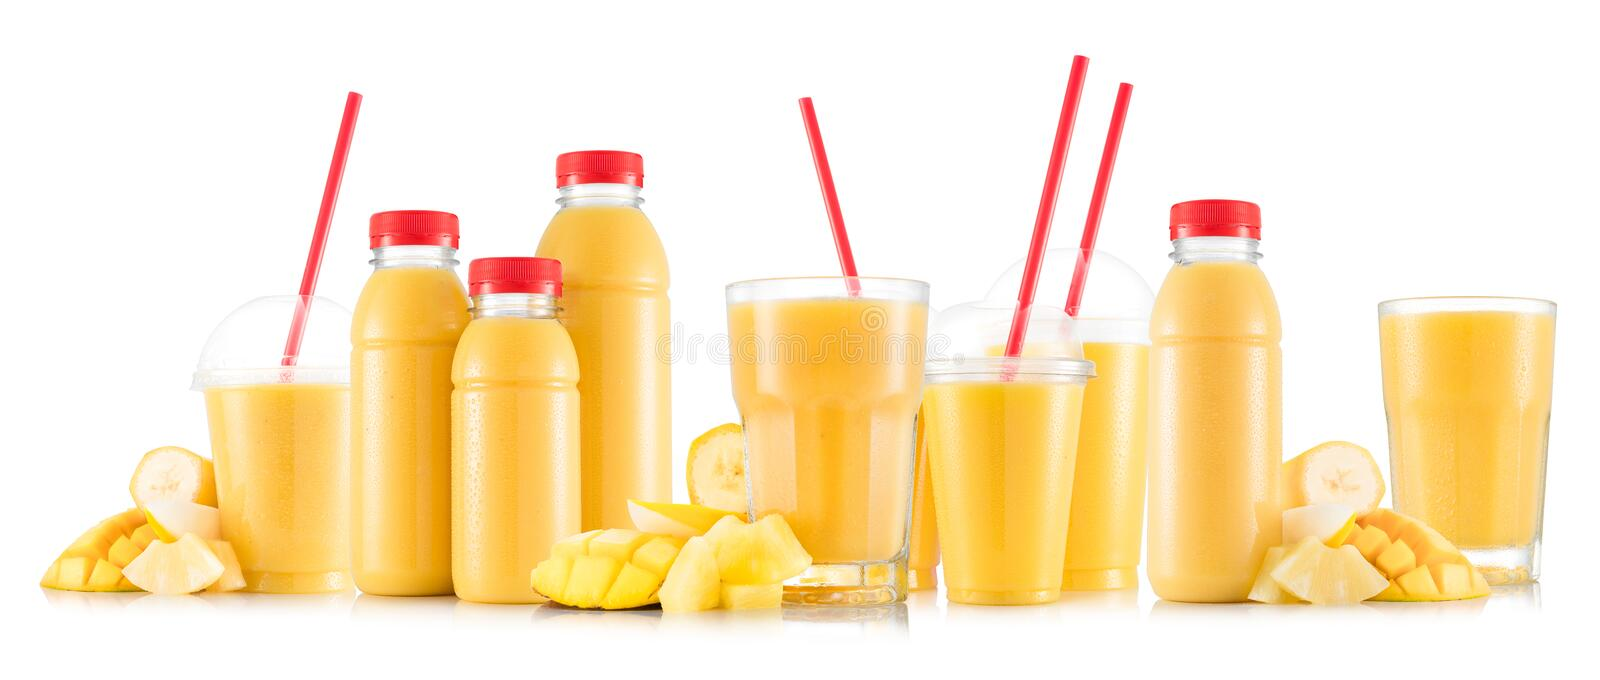 Download Multifruit Smoothie In Many Kinds Of Glasses And Bottles Stock Photo - Image of menu, breakfast: 81769456